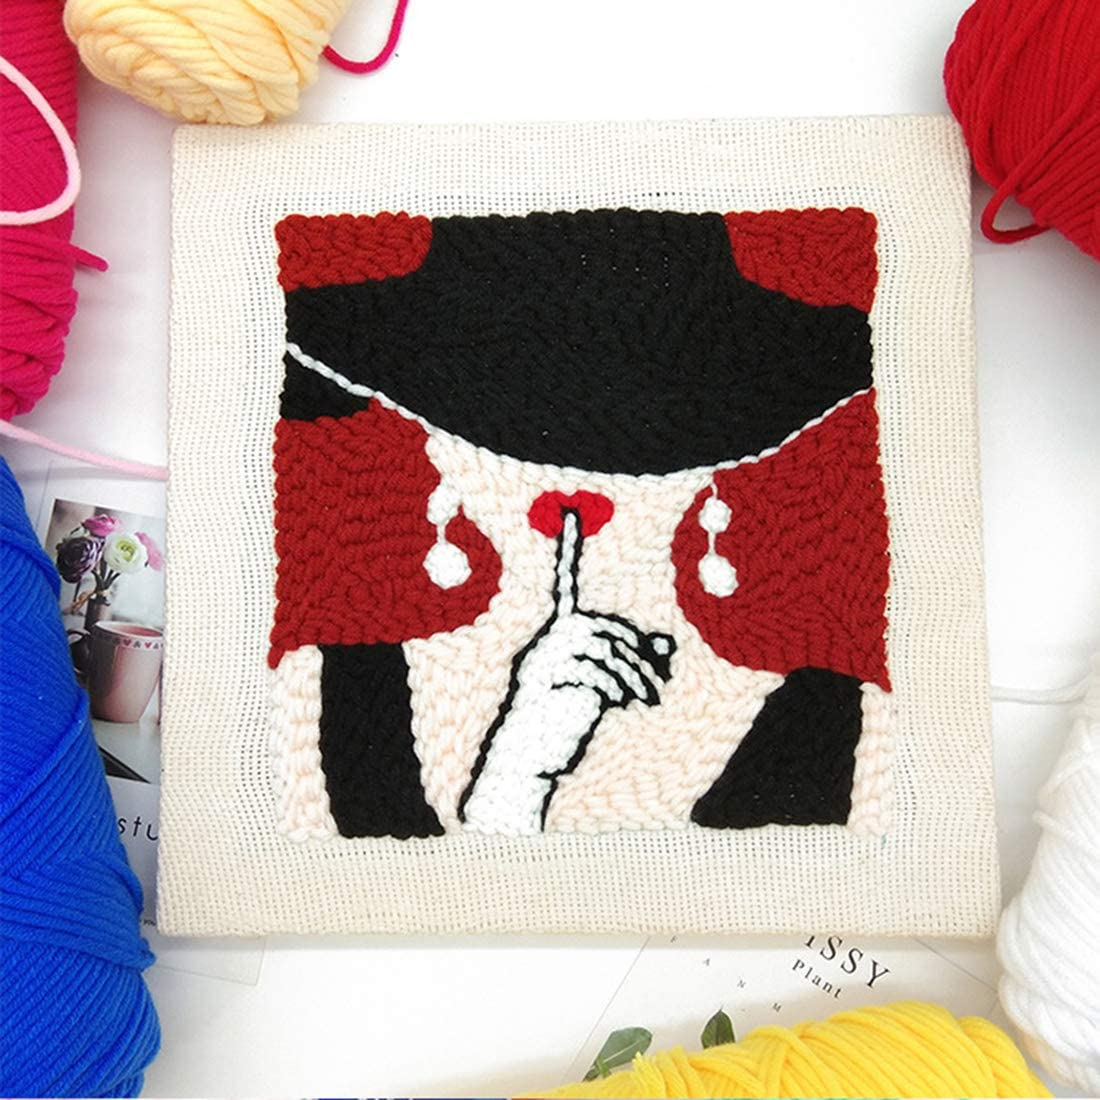 DIY Handcraft Rug Hooking Kit Knitting Wool Embroidery Kit with Tools,Embroidery Frame and Punch Needle XSHION Latch Hook Kit for Adults and Kids Needlework Craft Gift Home Decor Rabbit